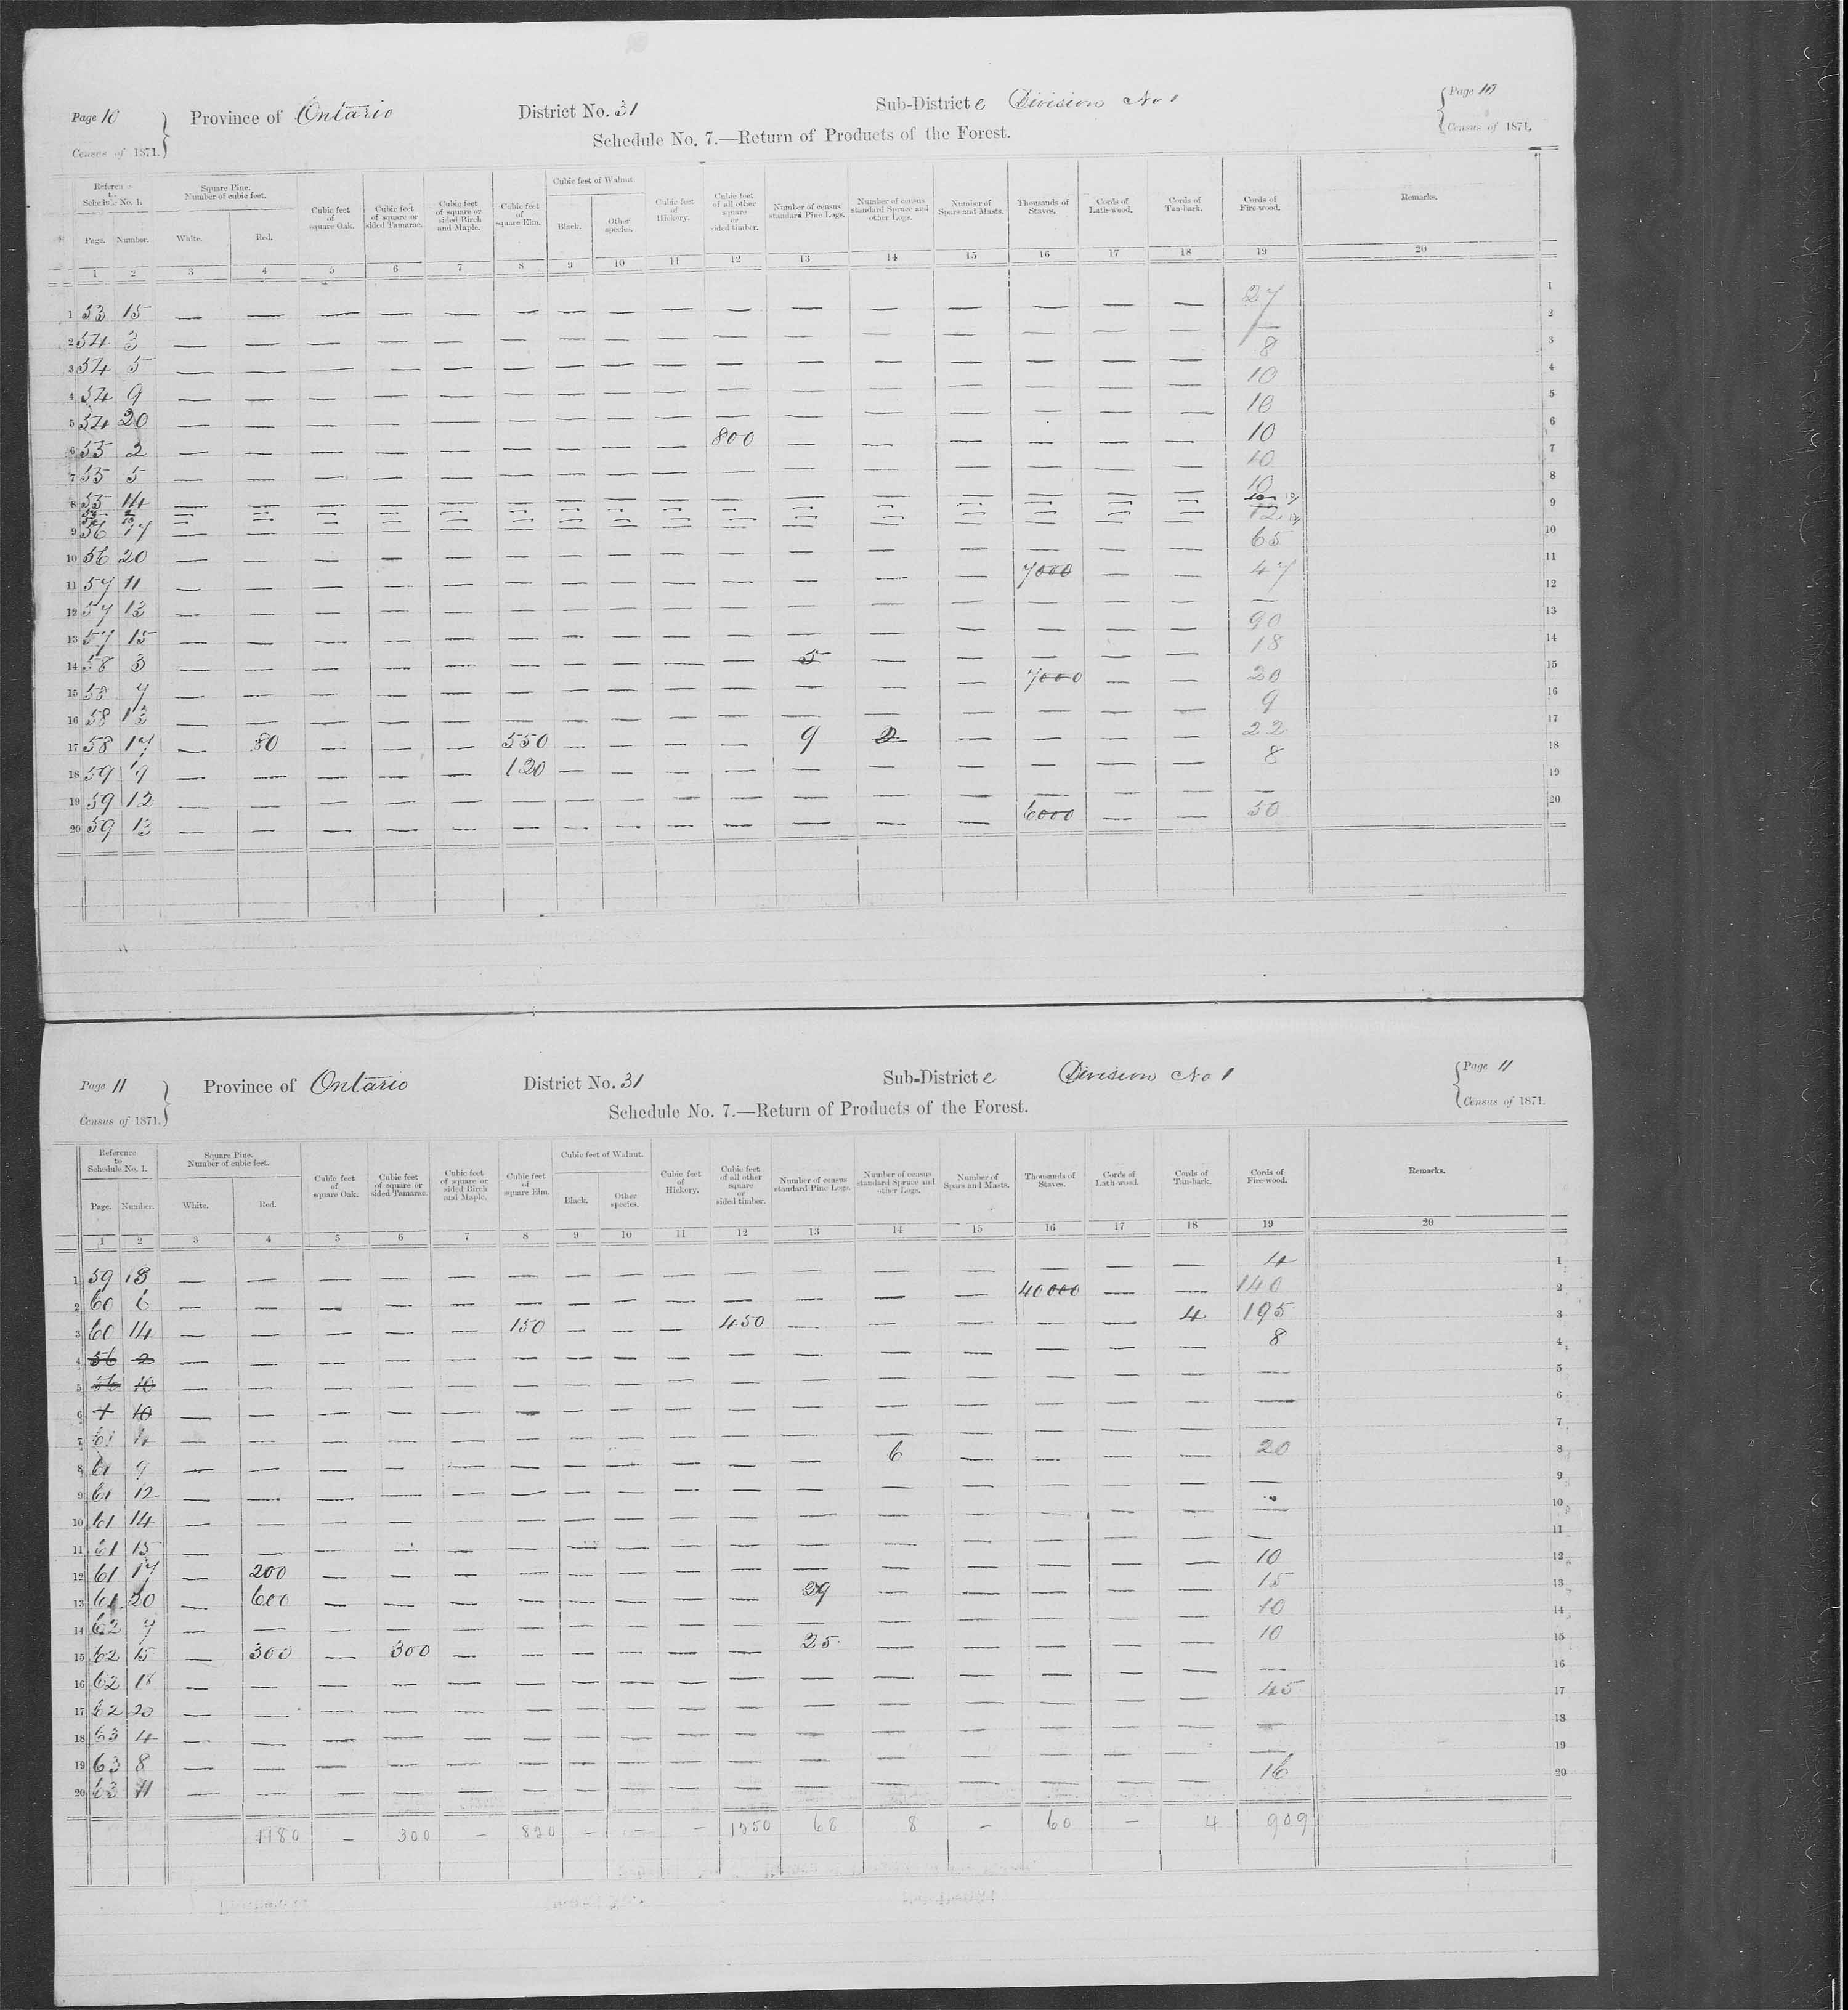 Title: Census of Canada, 1871 - Mikan Number: 142105 - Microform: c-9943